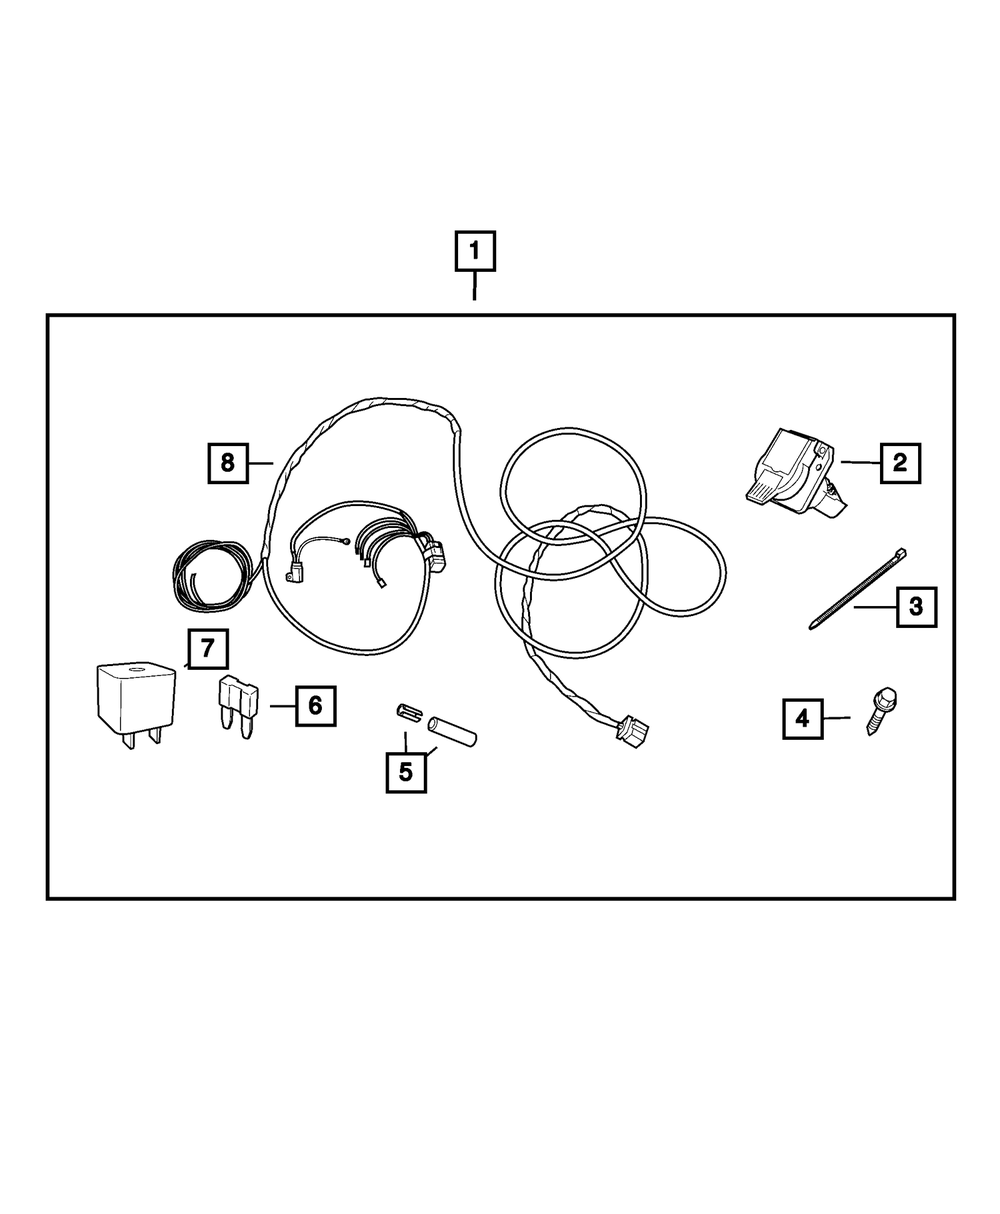 Genuine Tow Hitch Wiring Harness 7-Way Connector